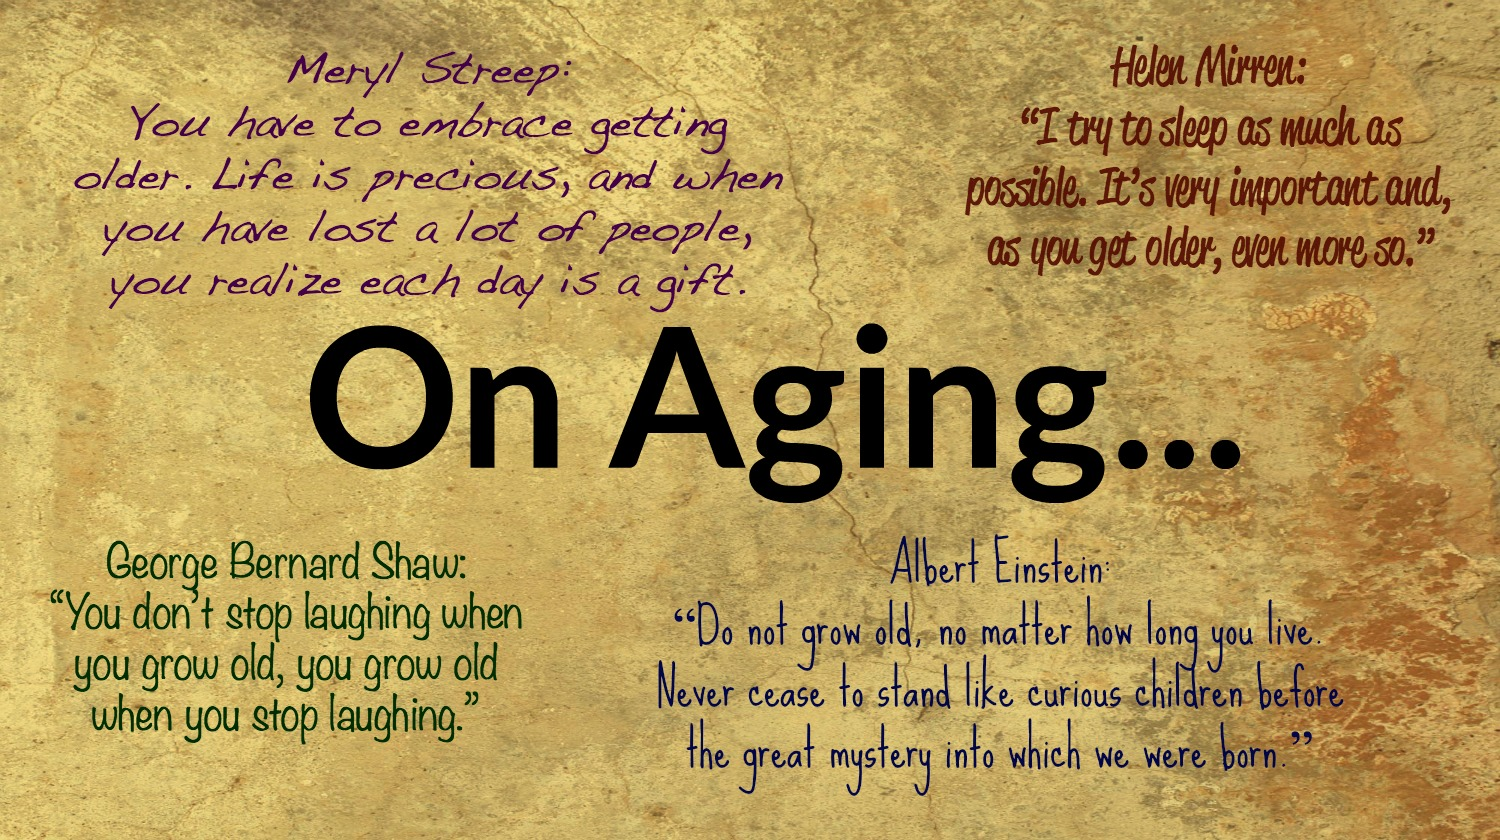 Very Inspiring Quotes About Life 7 Inspirational Quotes For Aging Gracefully  Midlife Boulevard